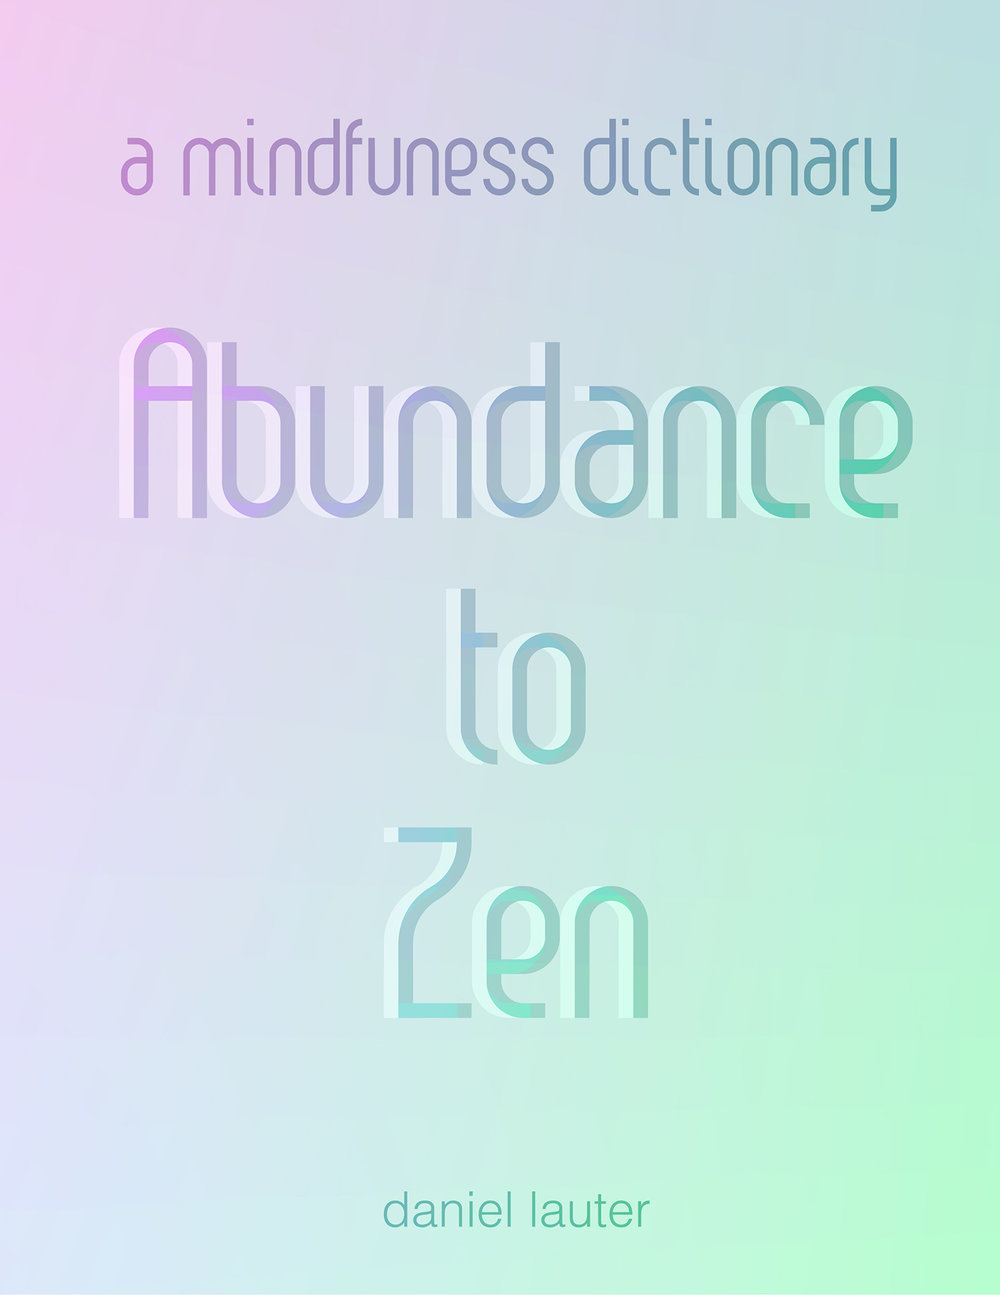 Copy of A Mindfulness Dictionary